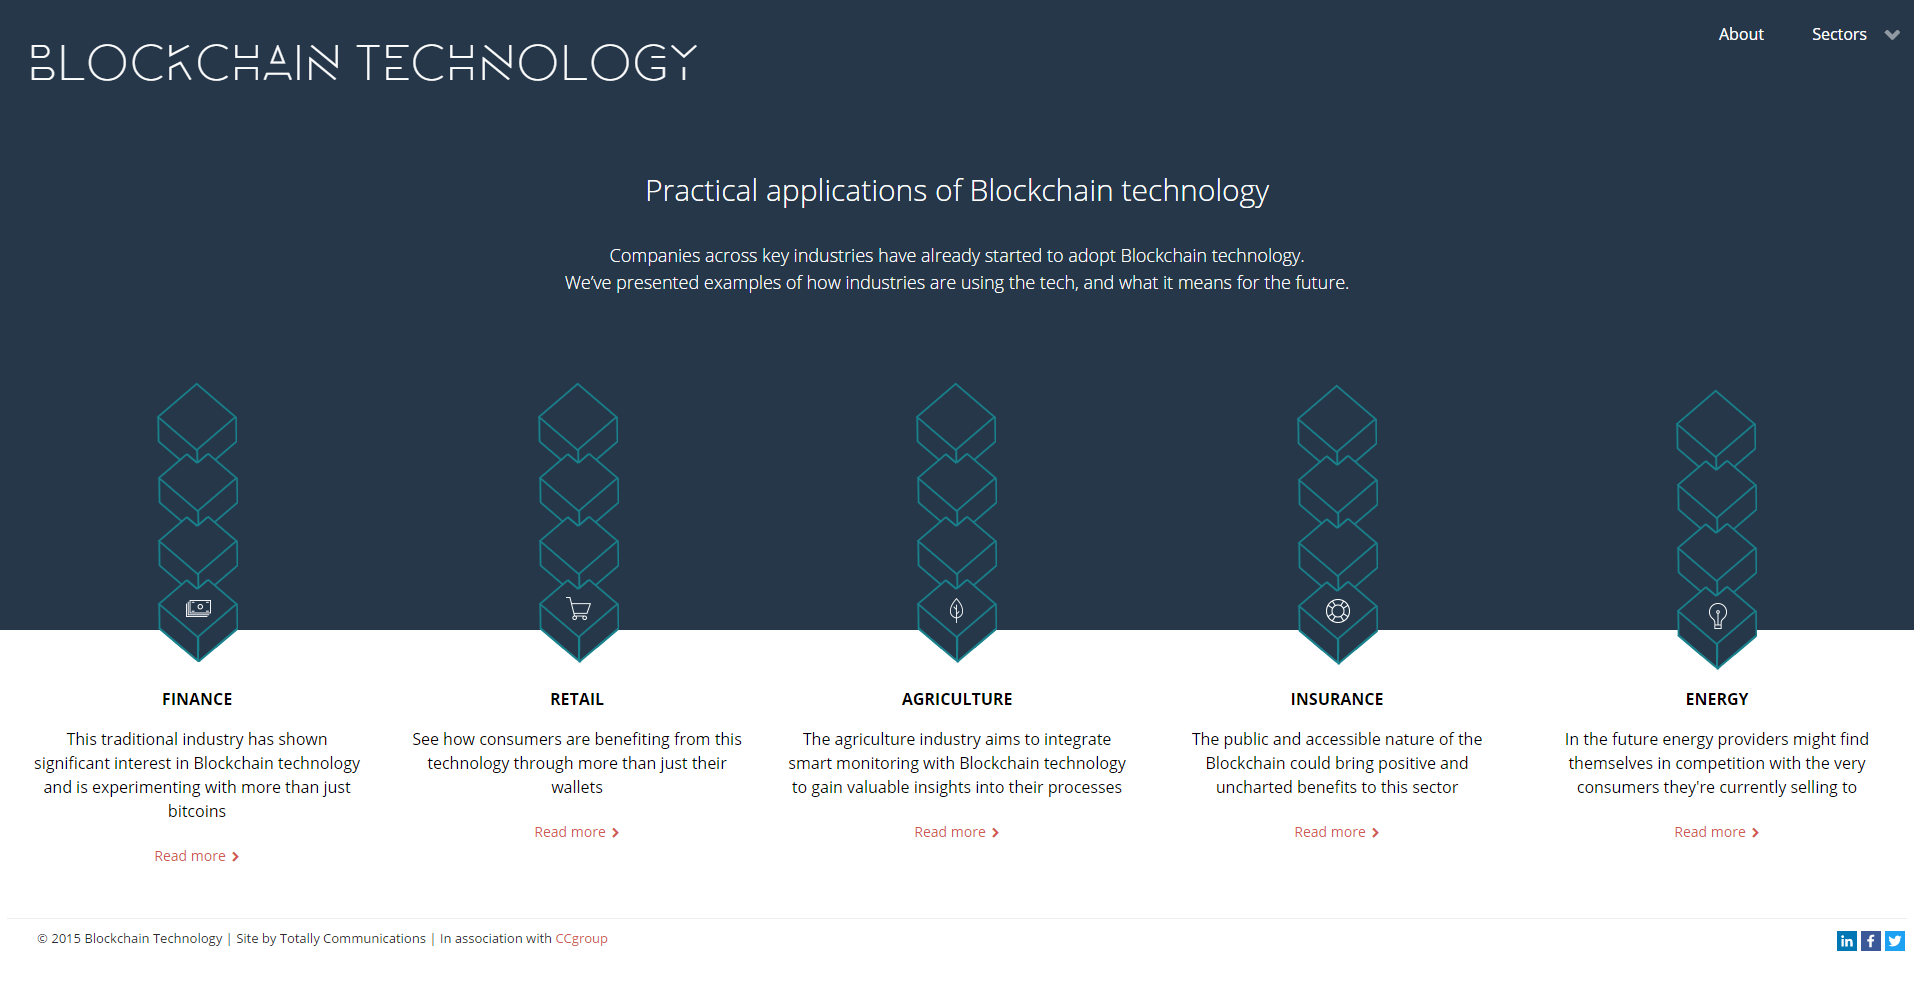 Practical Applications of Blockchain Technology by CC Group